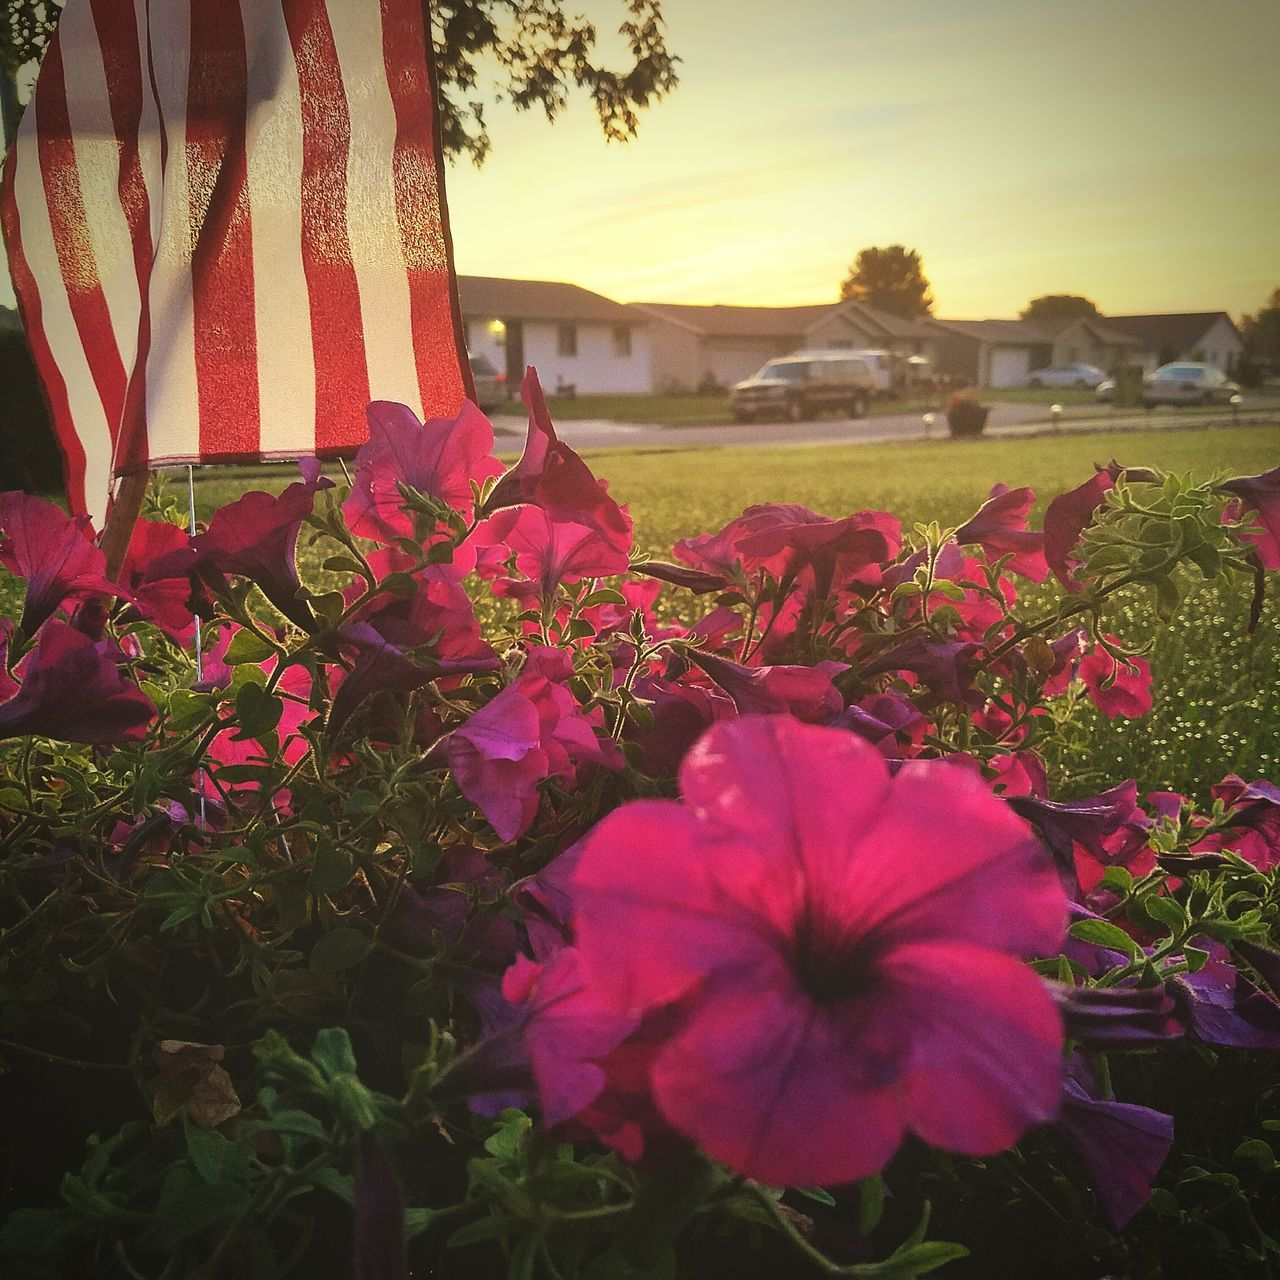 flower, growth, nature, beauty in nature, petal, fragility, outdoors, flower head, plant, freshness, sky, no people, blooming, sunset, field, day, close-up, red, petunia